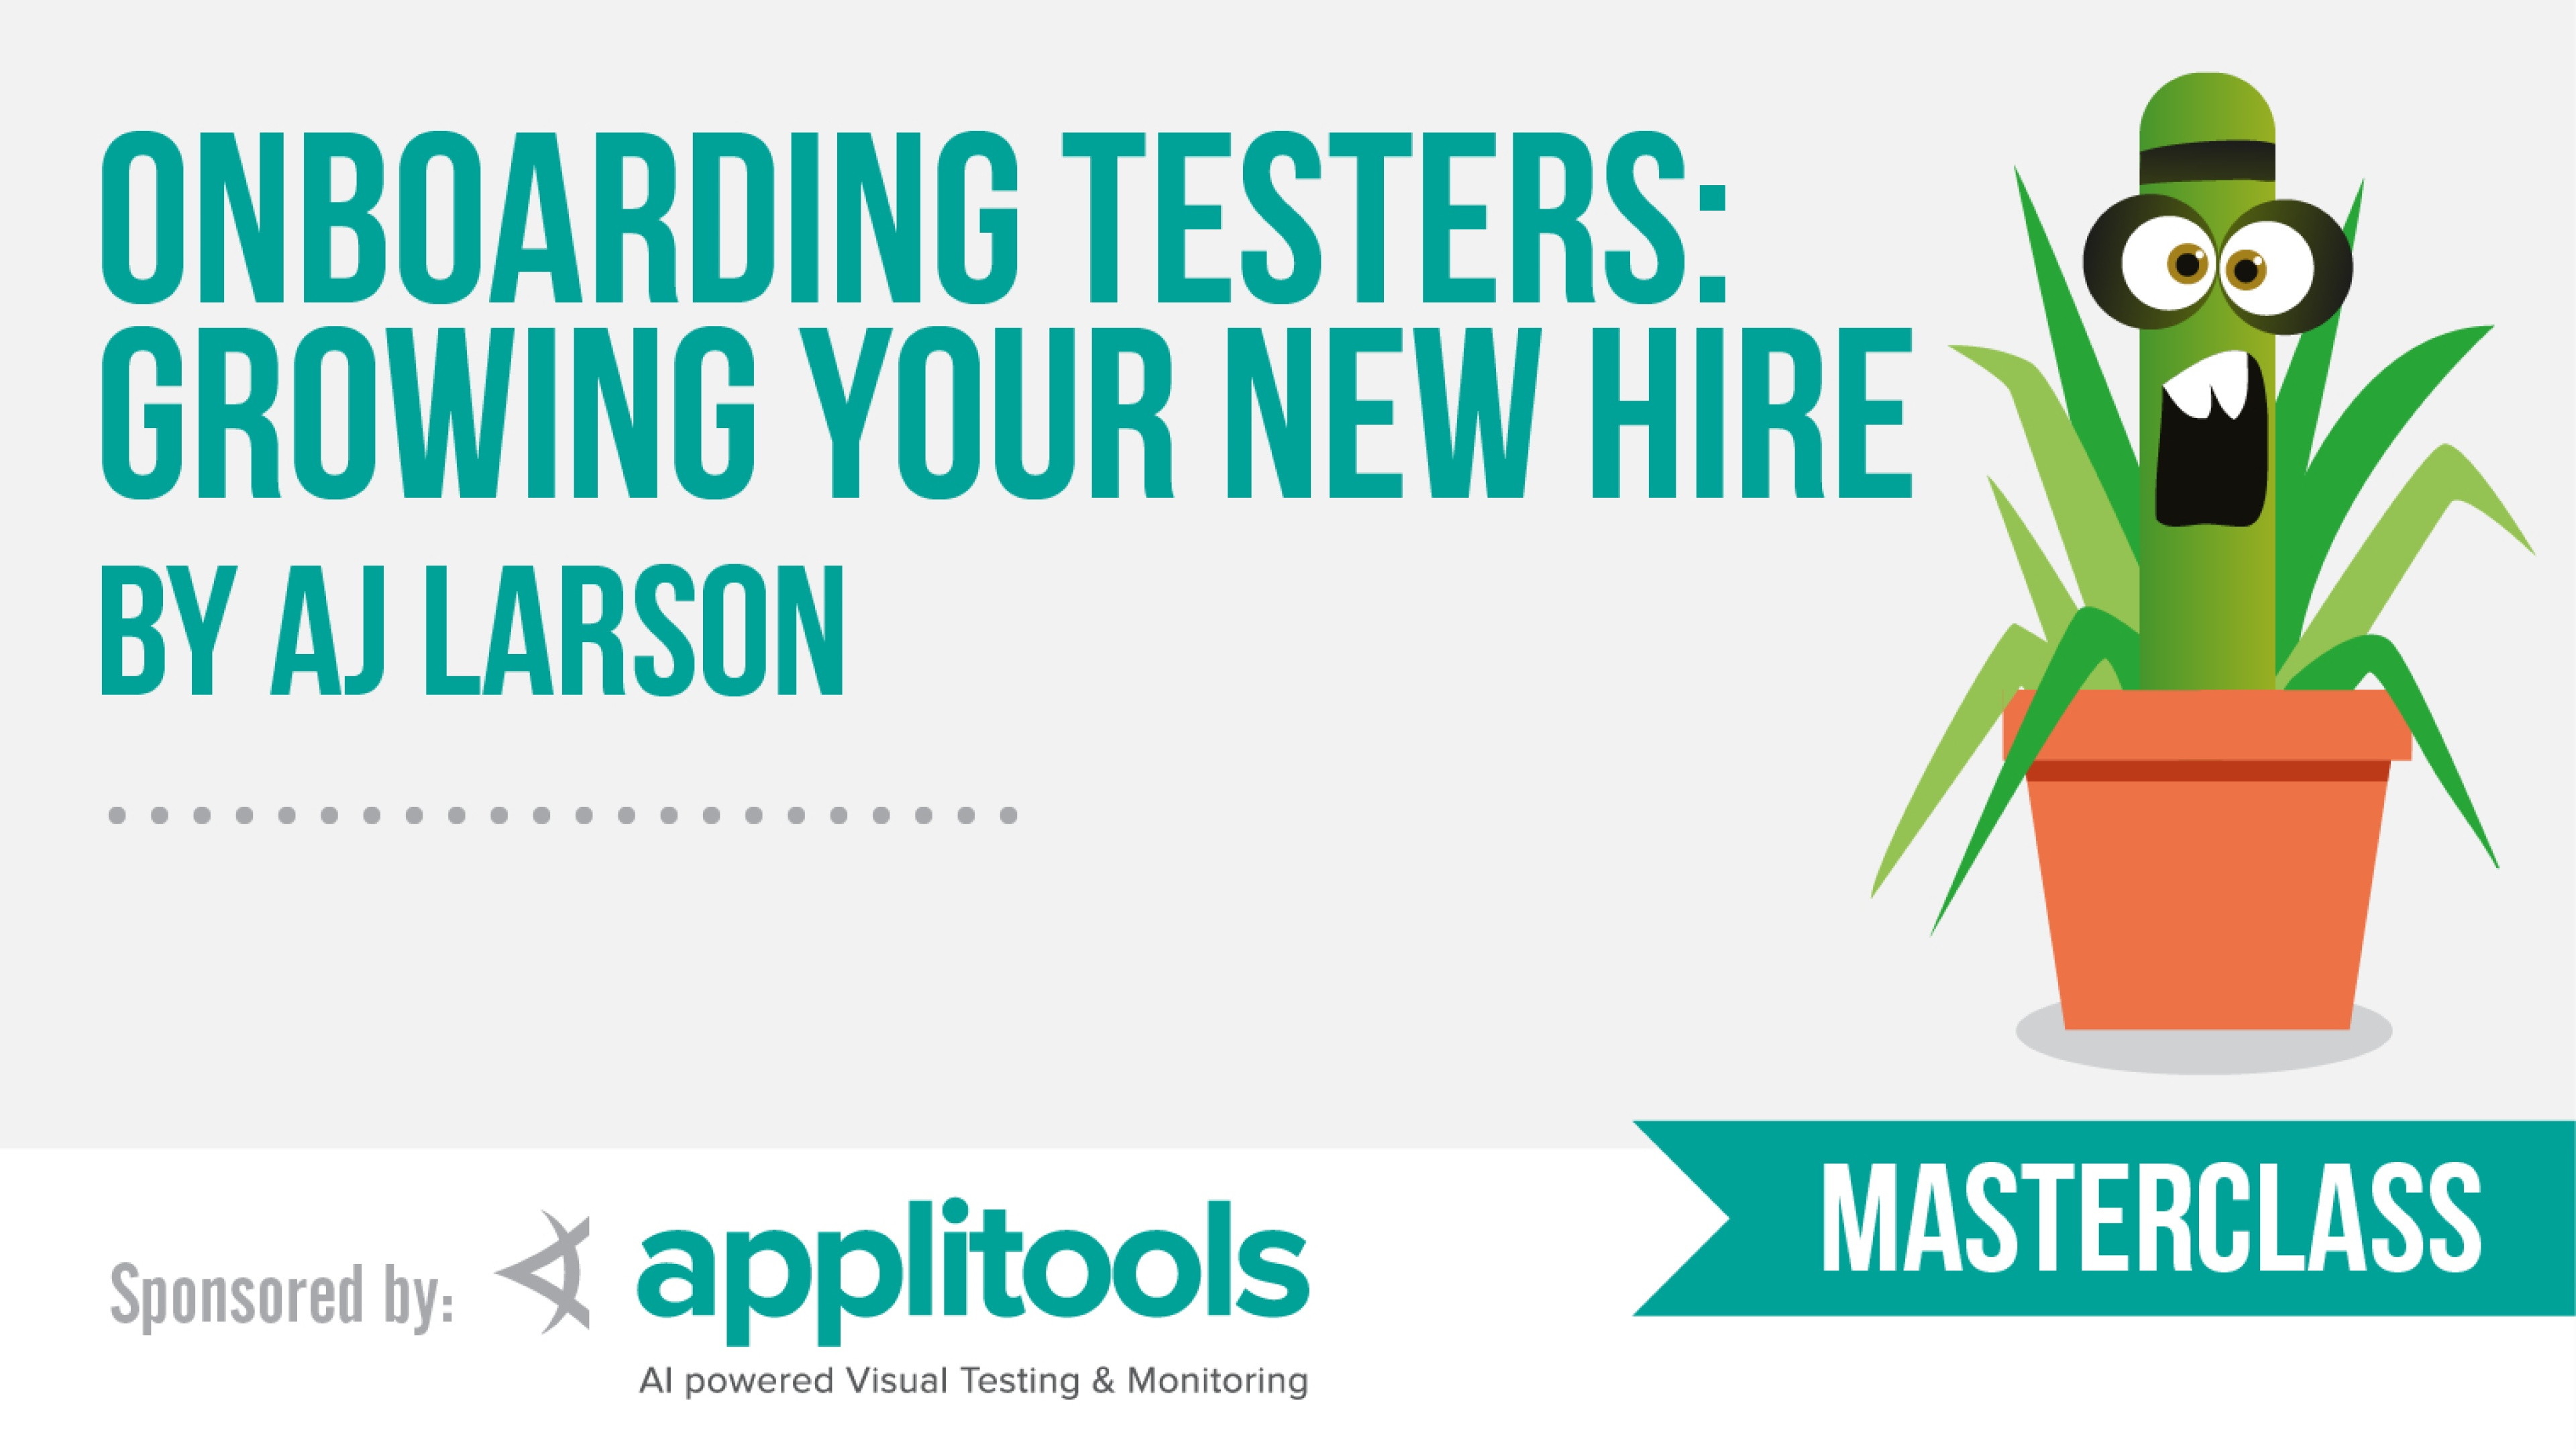 Onboarding testers: Growing your new hire with AJ Larson